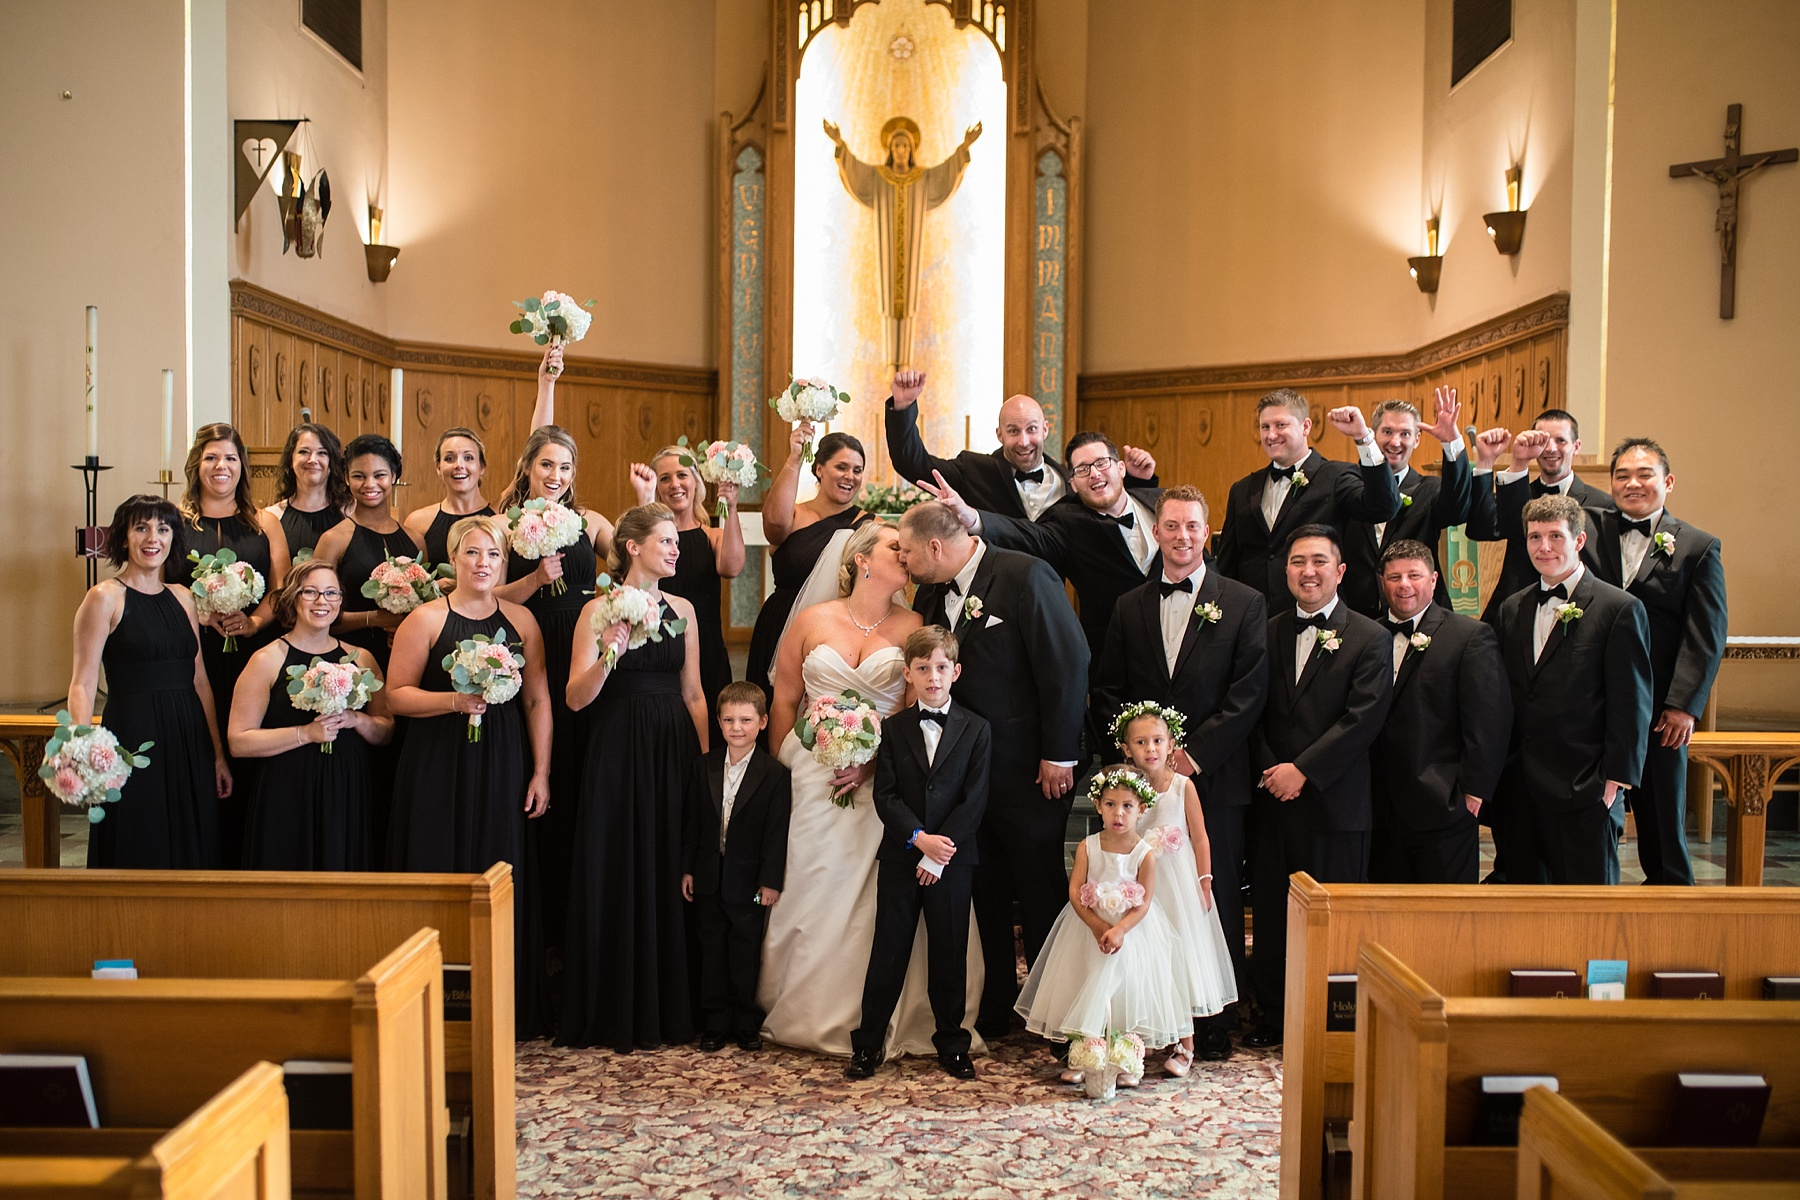 Brandon_Shafer_Photography_Brad_Sarah_Downtown_Grand_Rapids_Wedding_0037.jpg